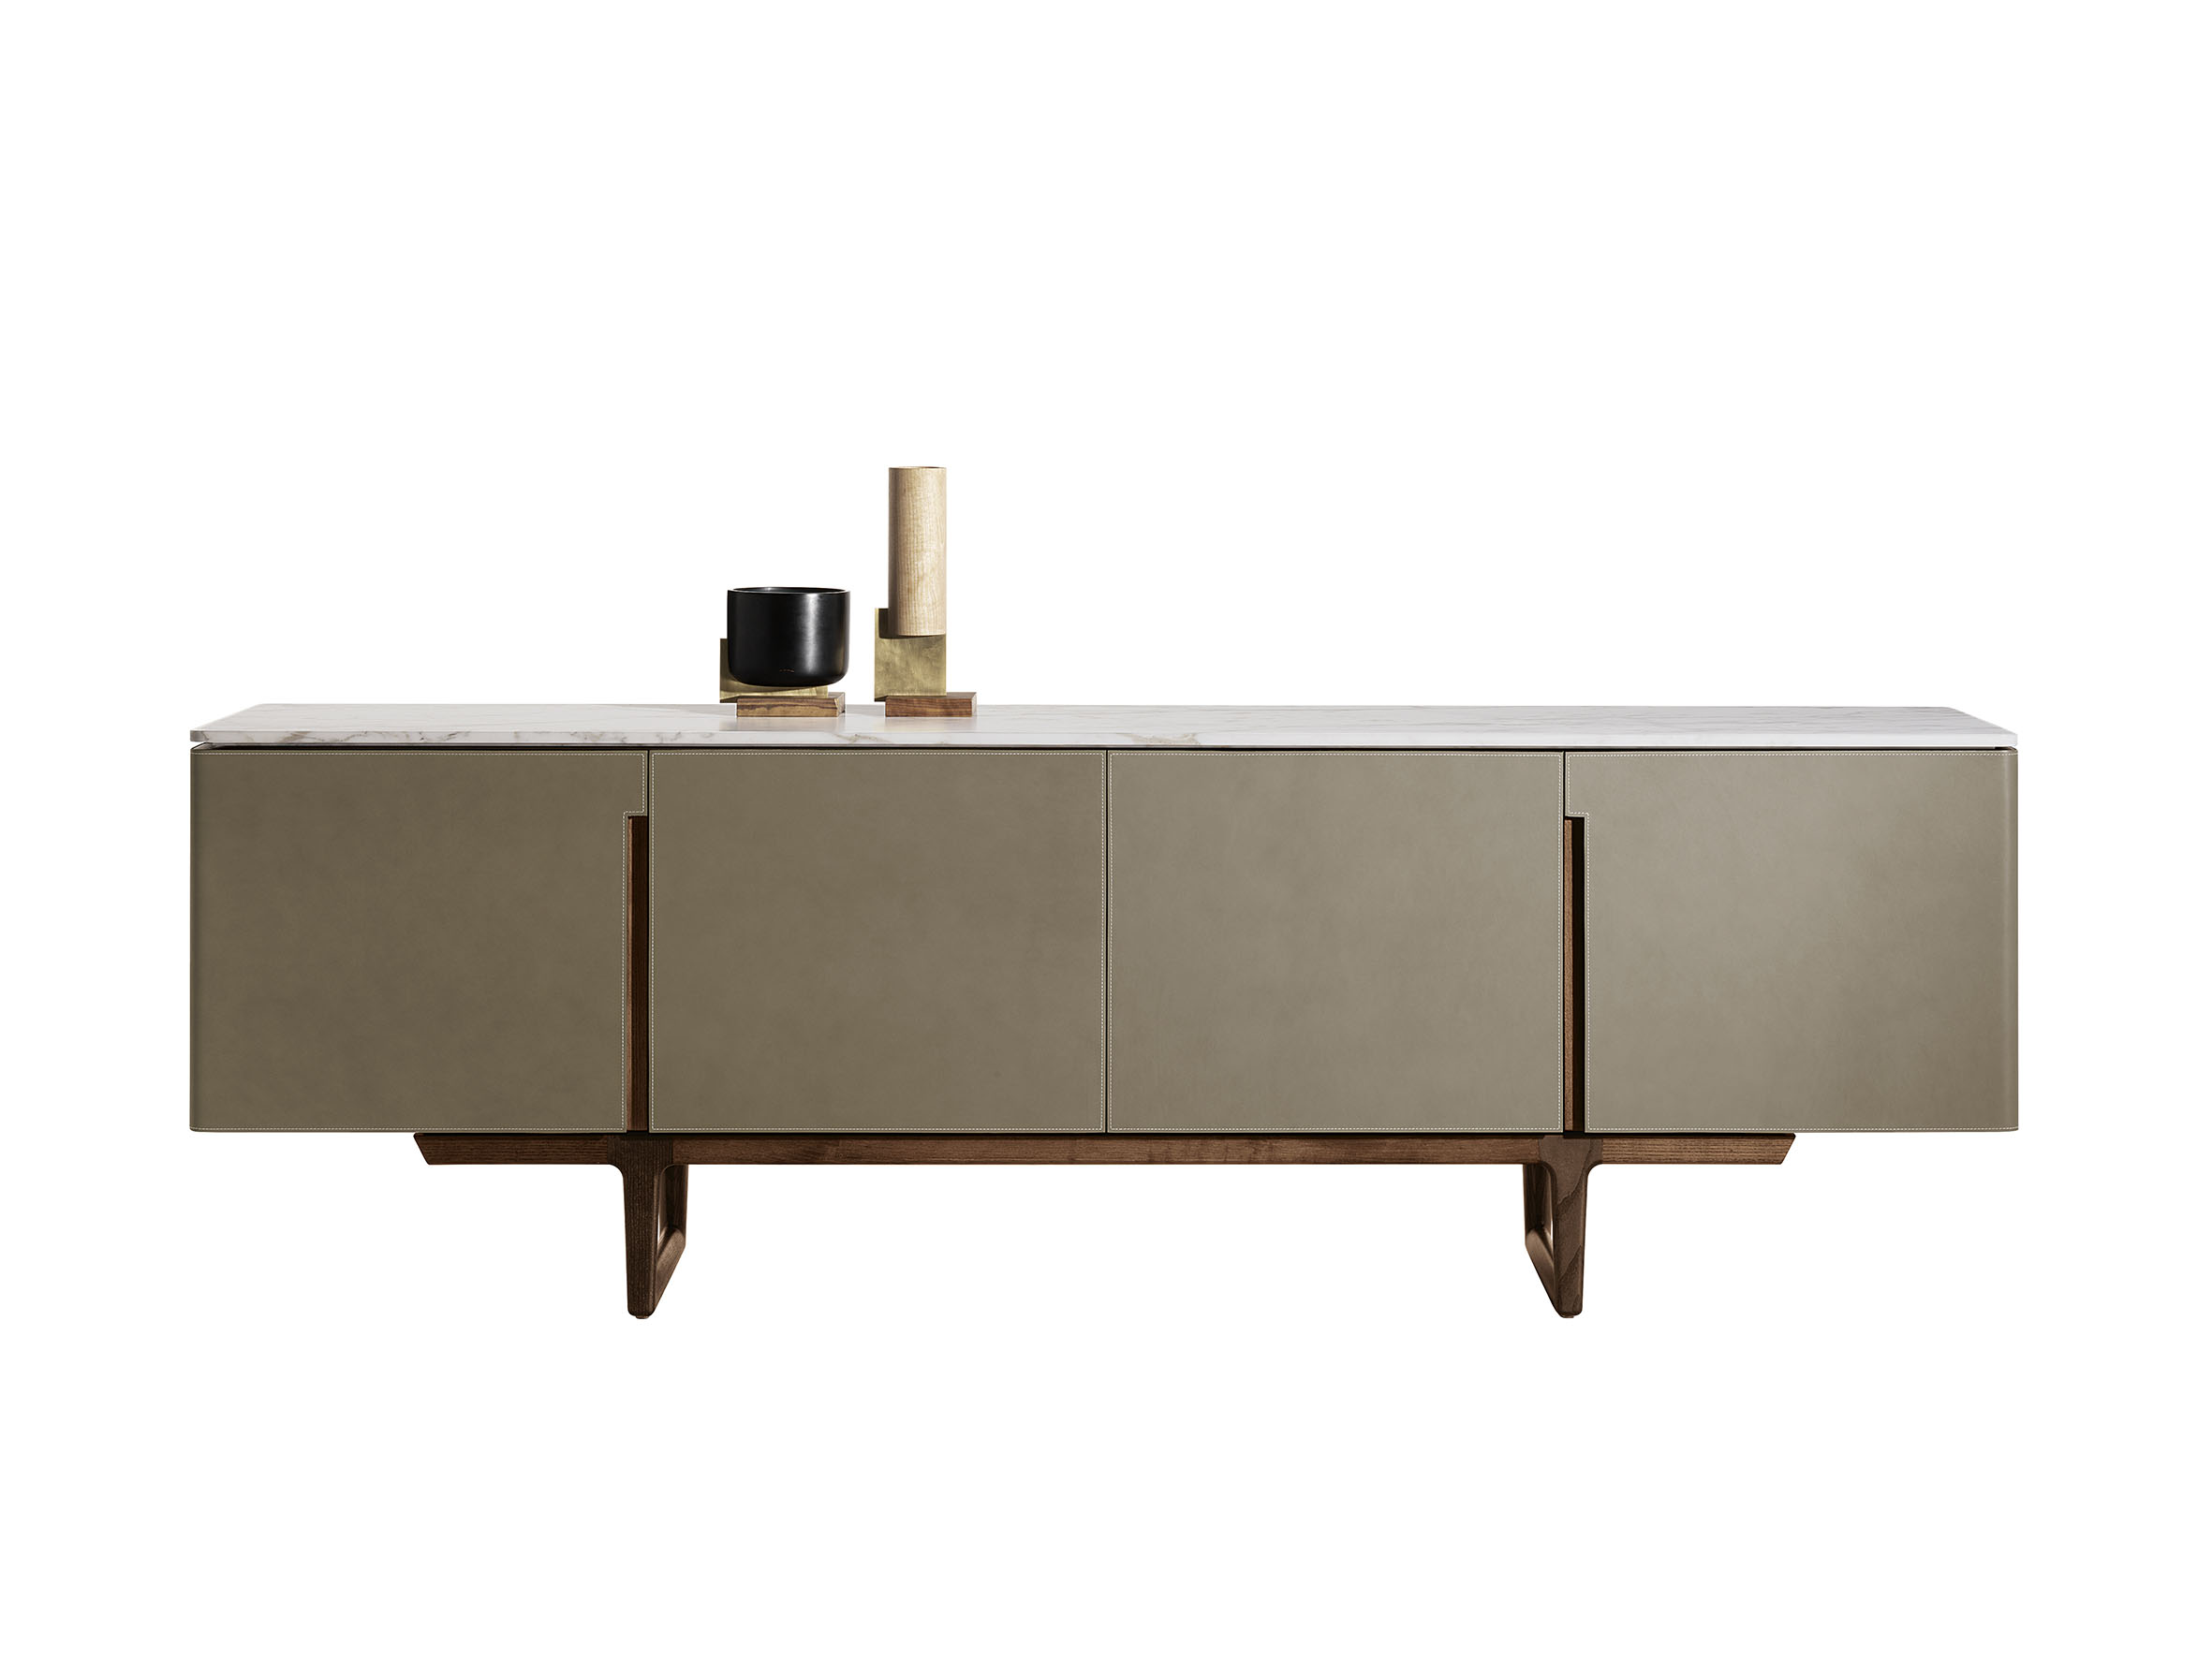 Wonderful FIDELIO | Sideboard THE COLLECTION   Furniture And Complementary Units  Collection By Poltrona Frau Design Roberto Lazzeroni